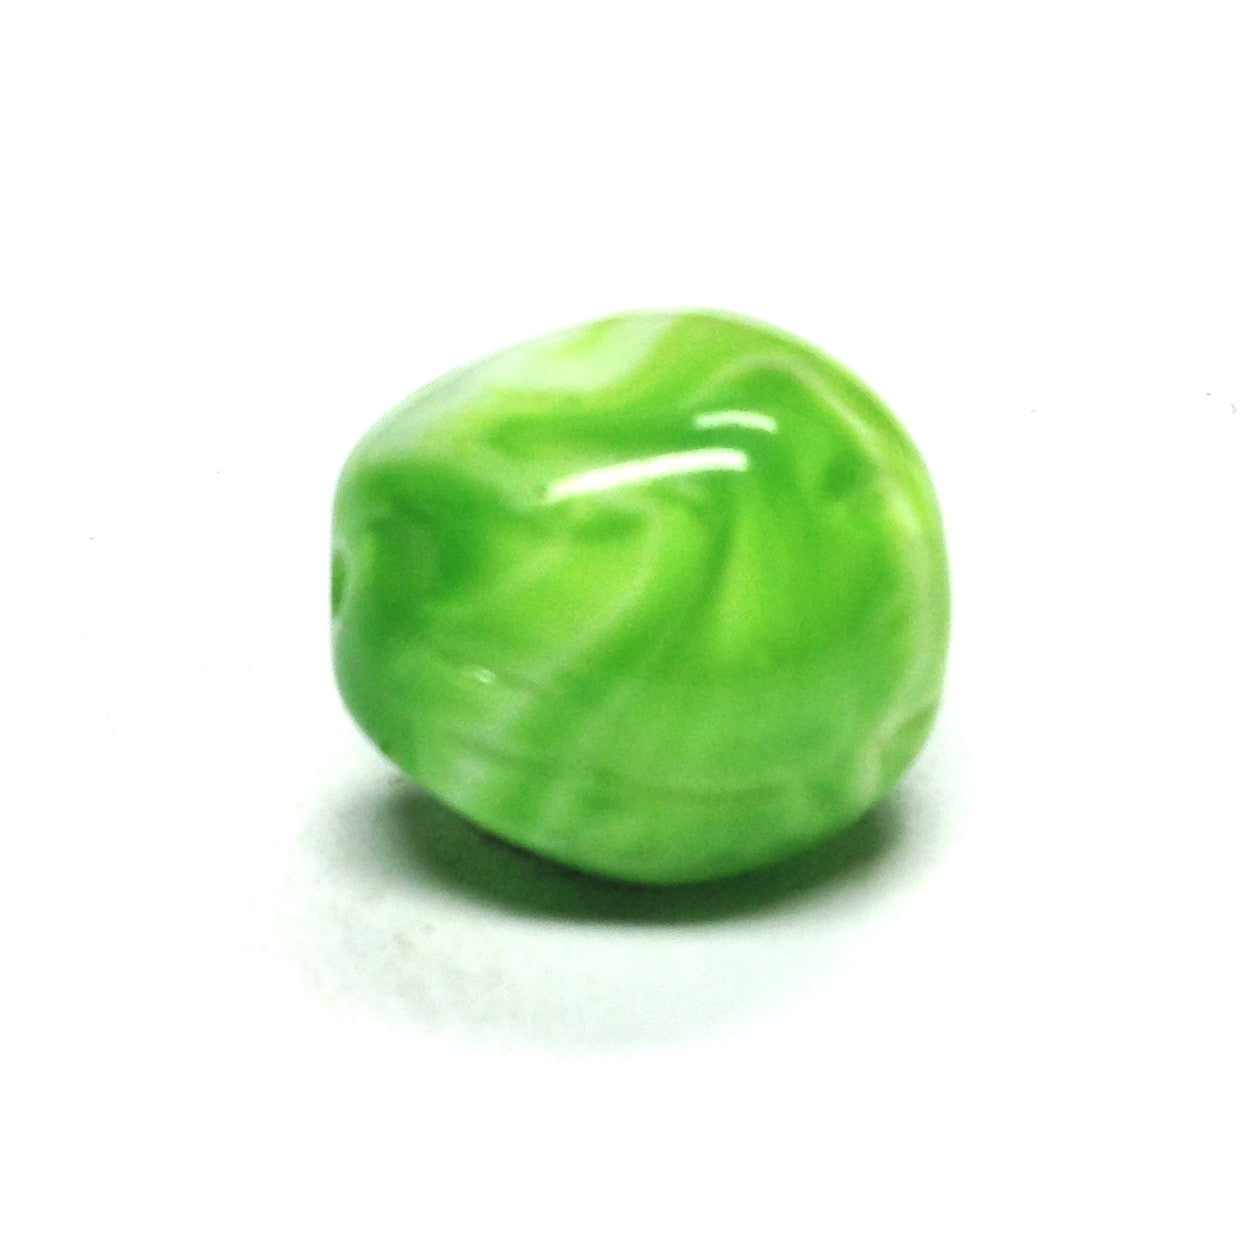 13X12MM Green/Wht Fancy Glass Bead (36 pieces)